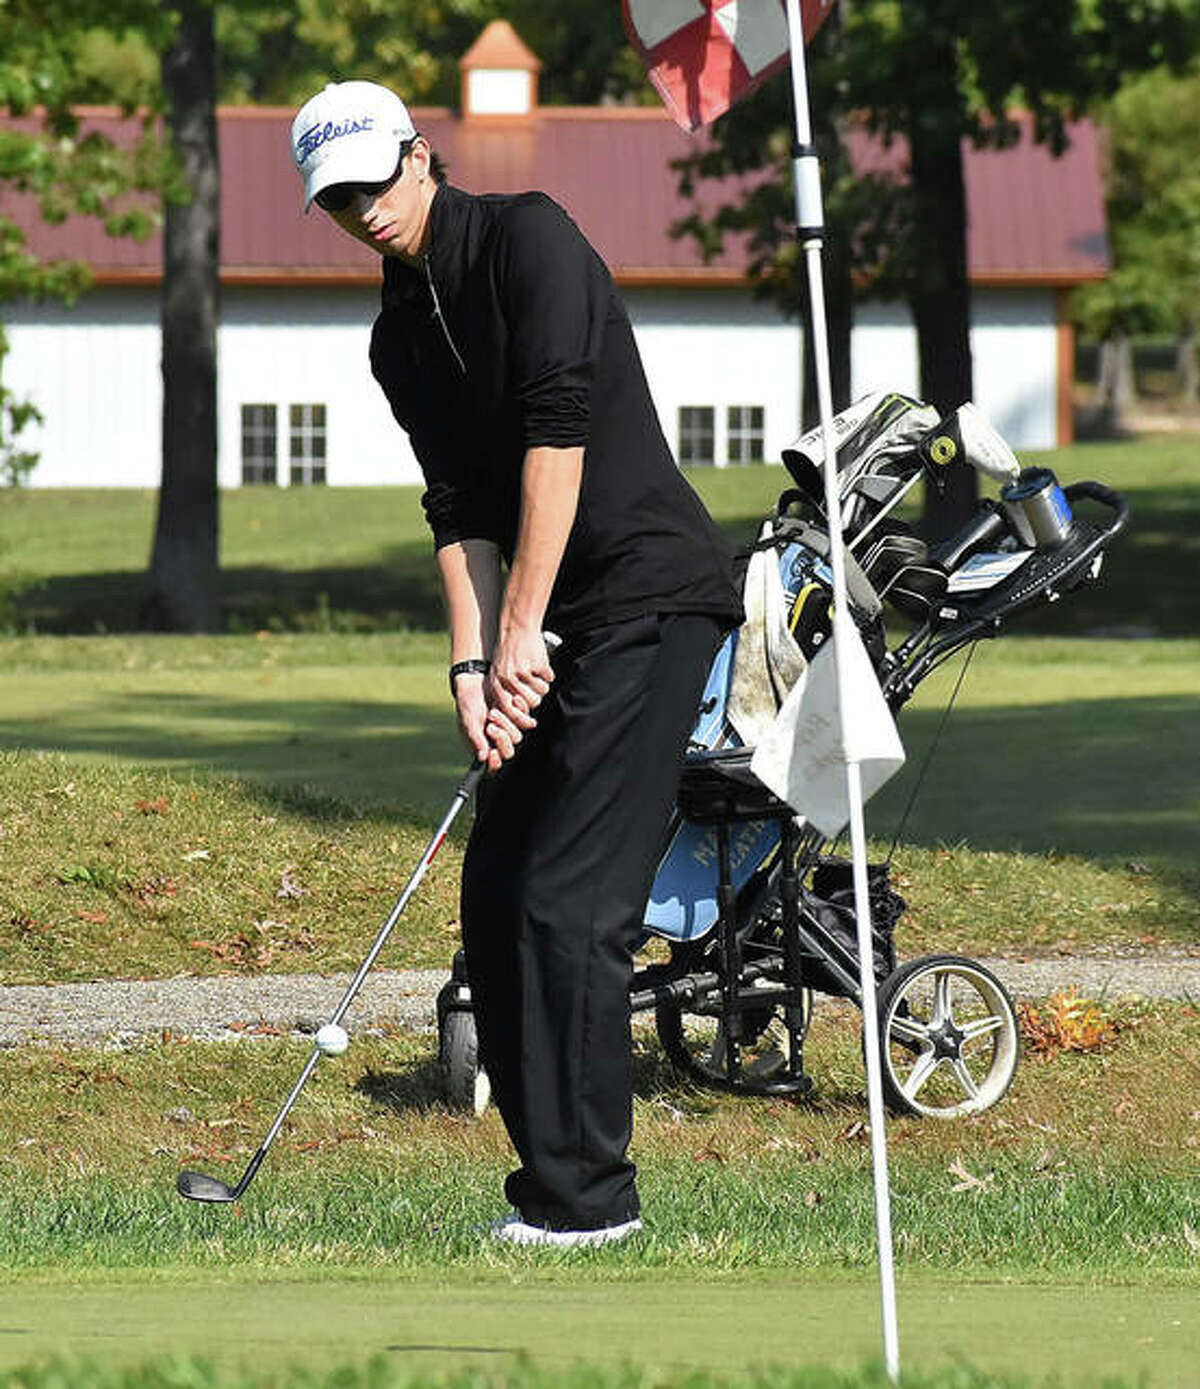 Marquette's William Roderfeld chips onto the green at the Class 1A regional at Timber Lakes in Staunton. Roderfeld shot 77 to place fourth in the regional.